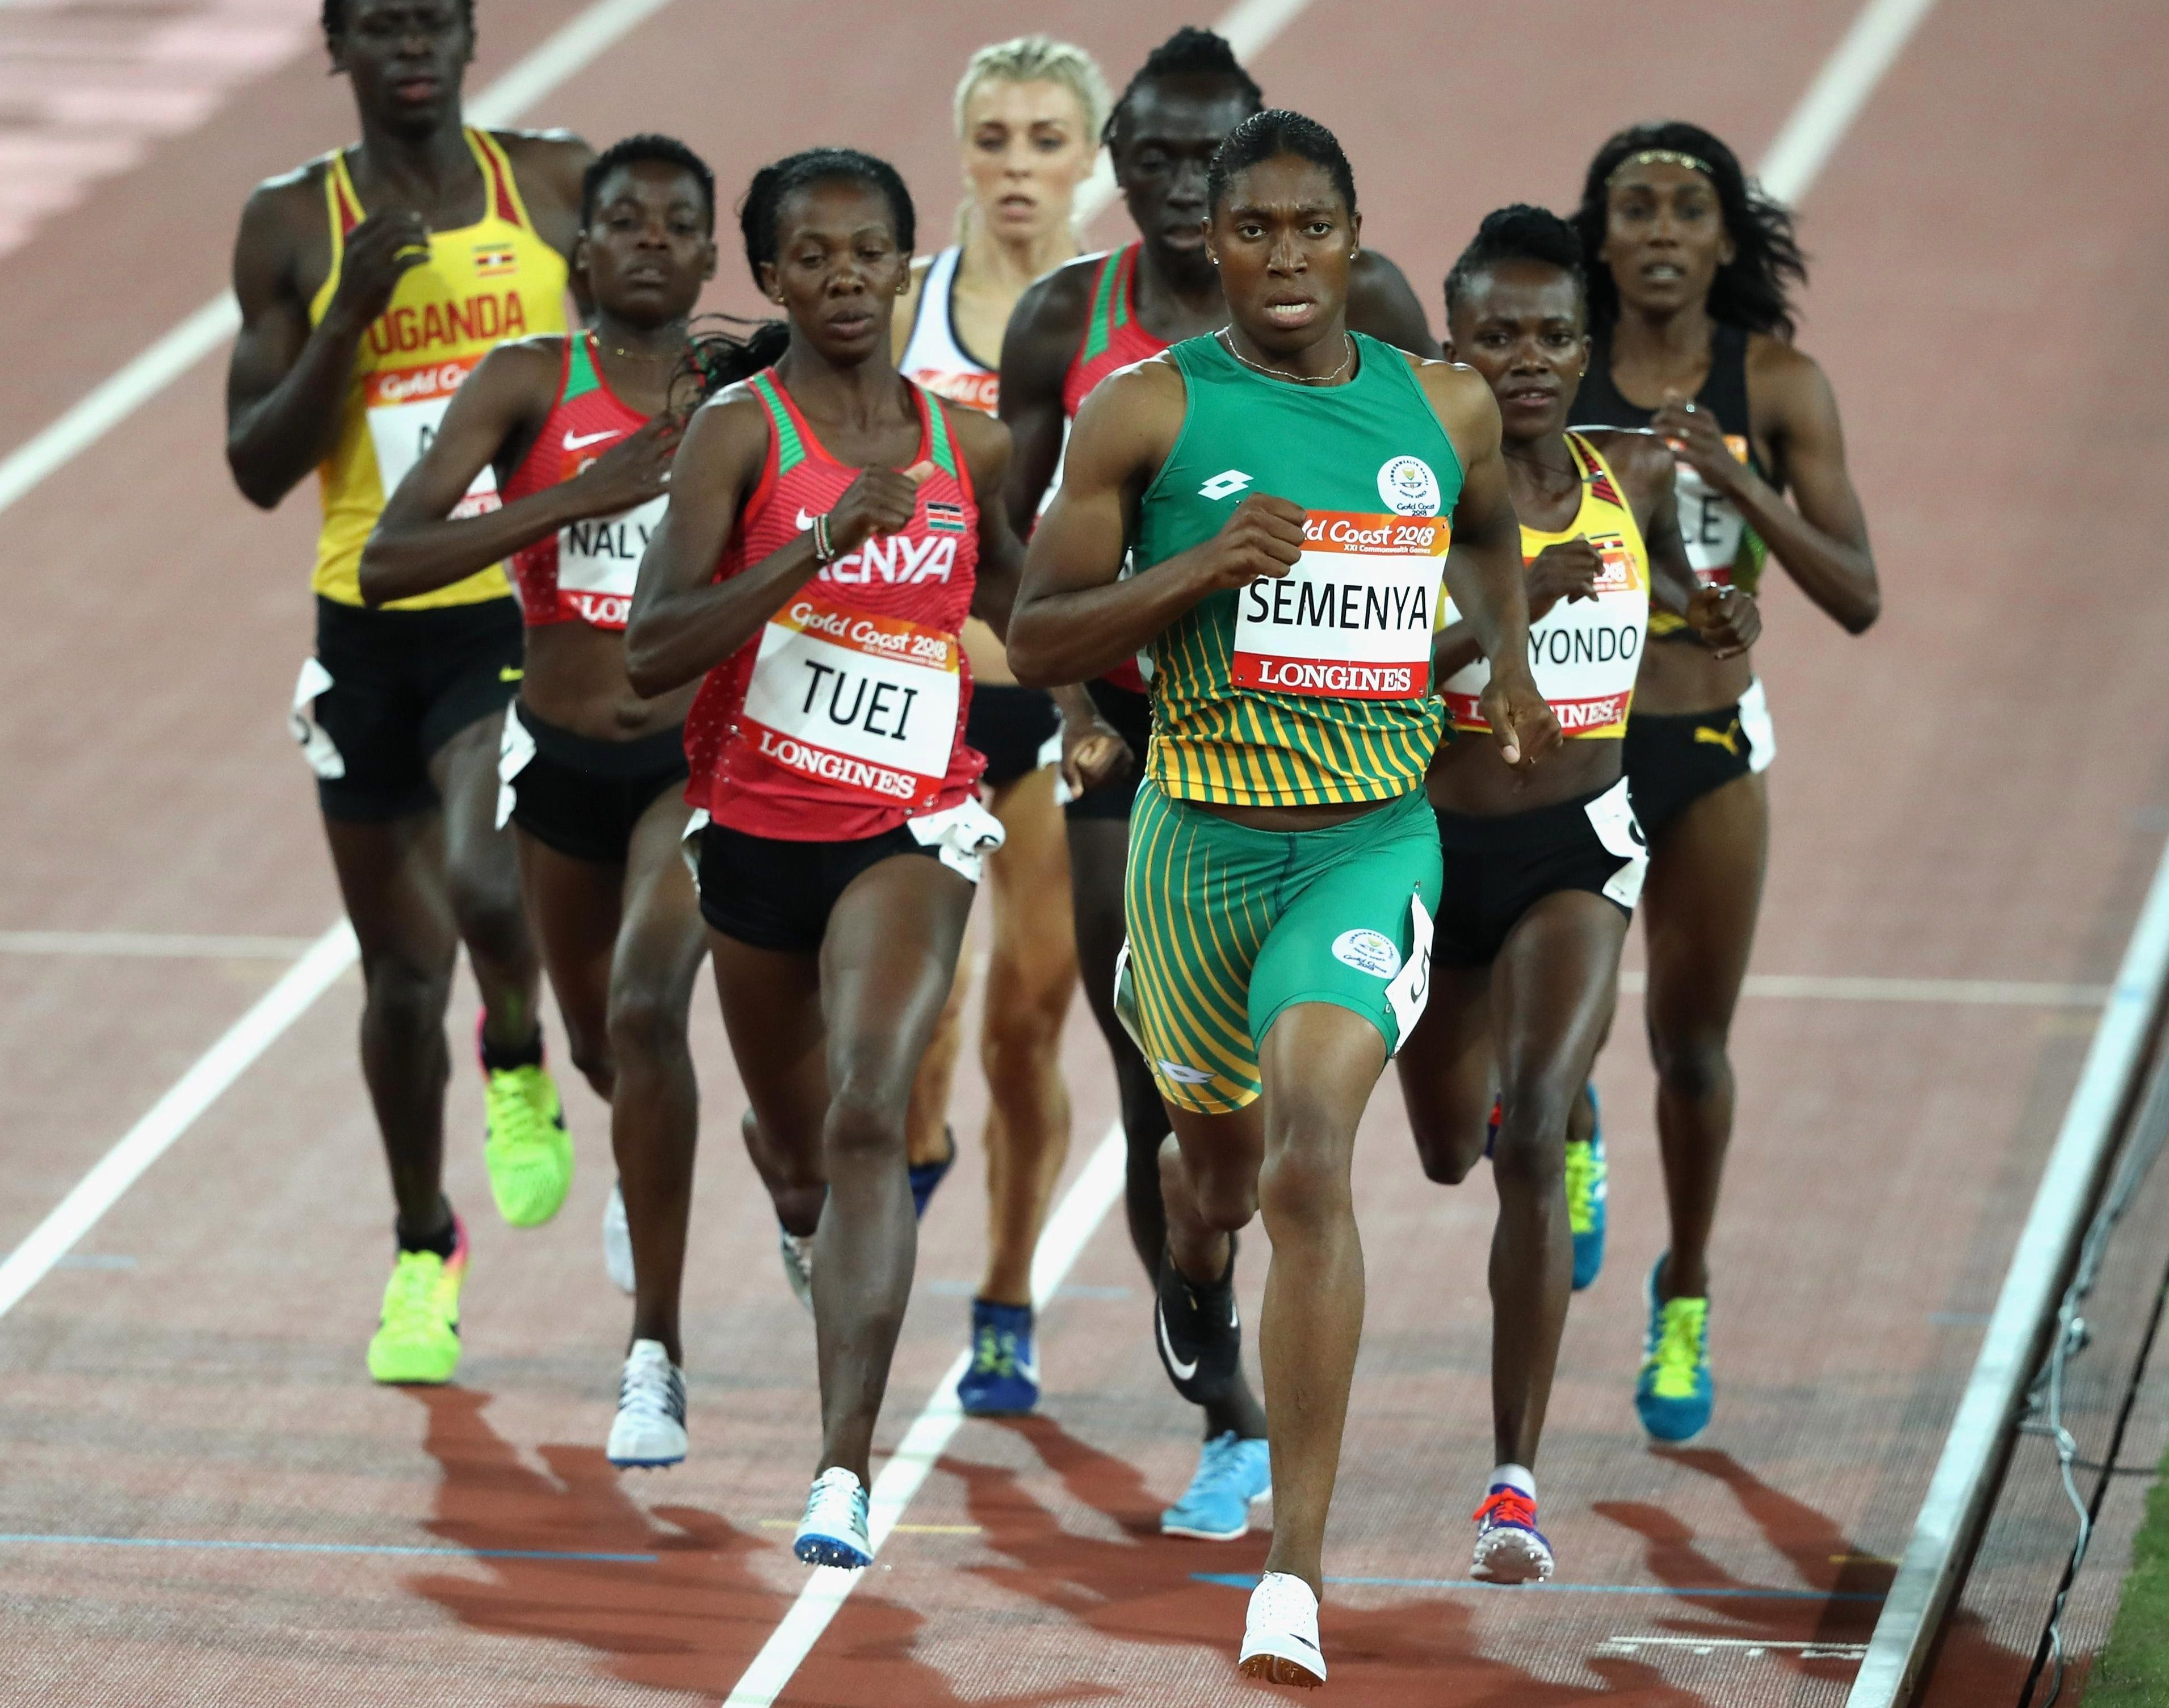 Semenya led the pack from start to finish in the Gold Coast as she eased to a Commonwealth Games record